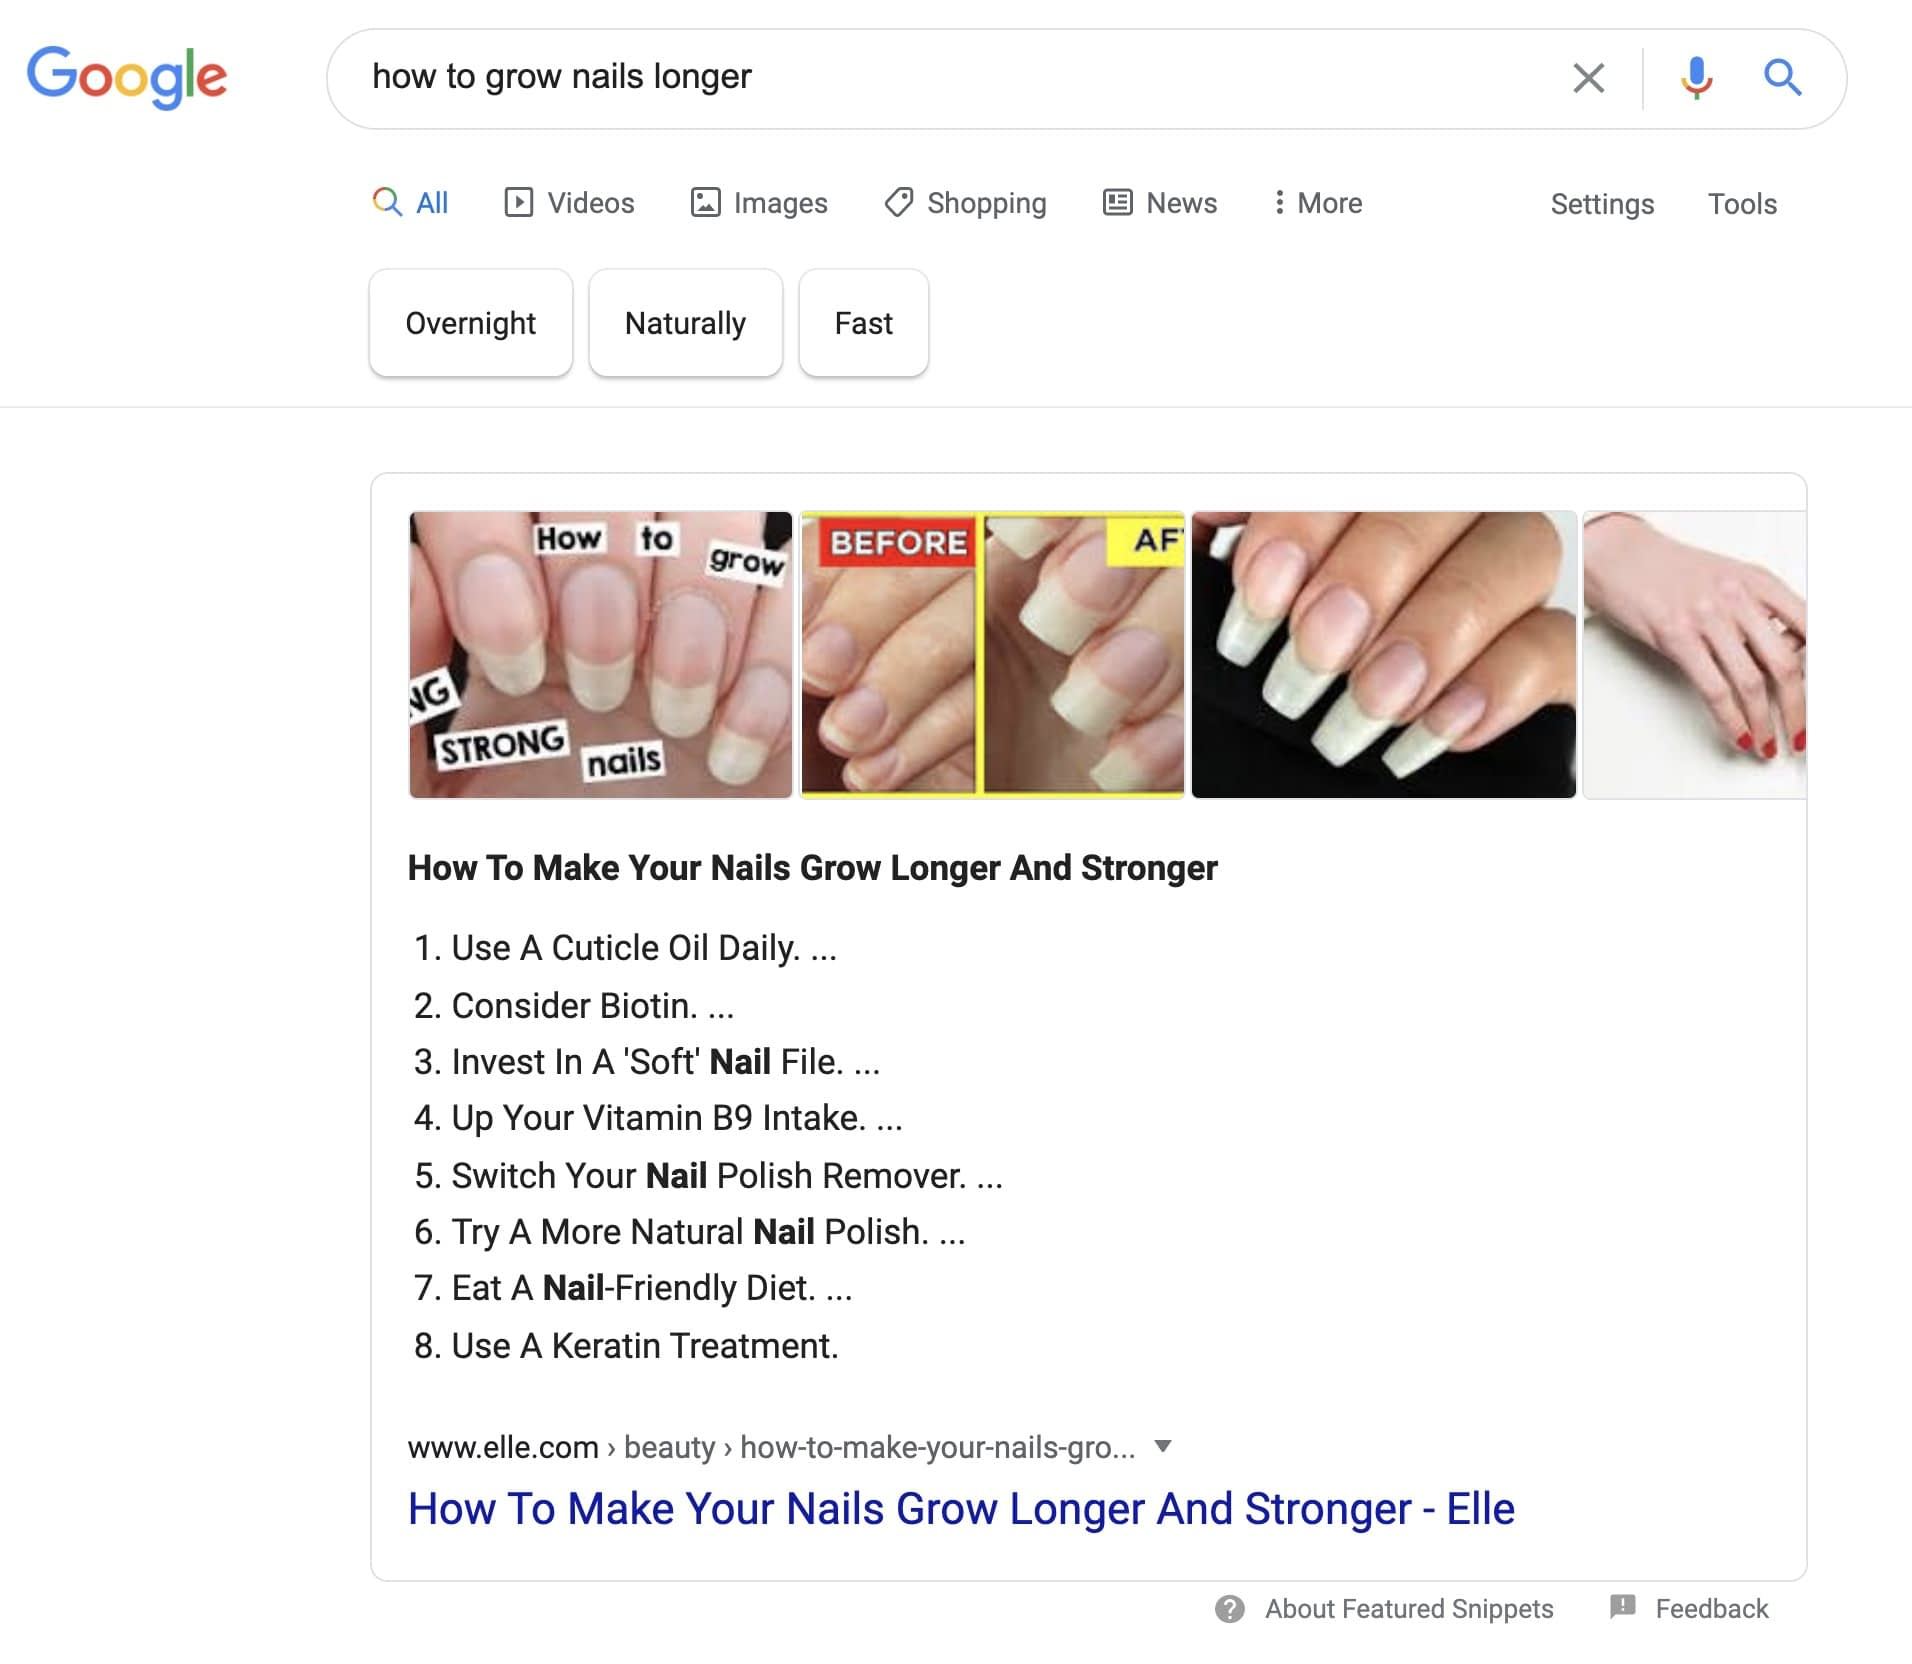 By optimizing your website for featured snippets, you'll promote a positive experience for your site's visitors. Featured snippets provide users with a better understanding of what an indexed web page covers.